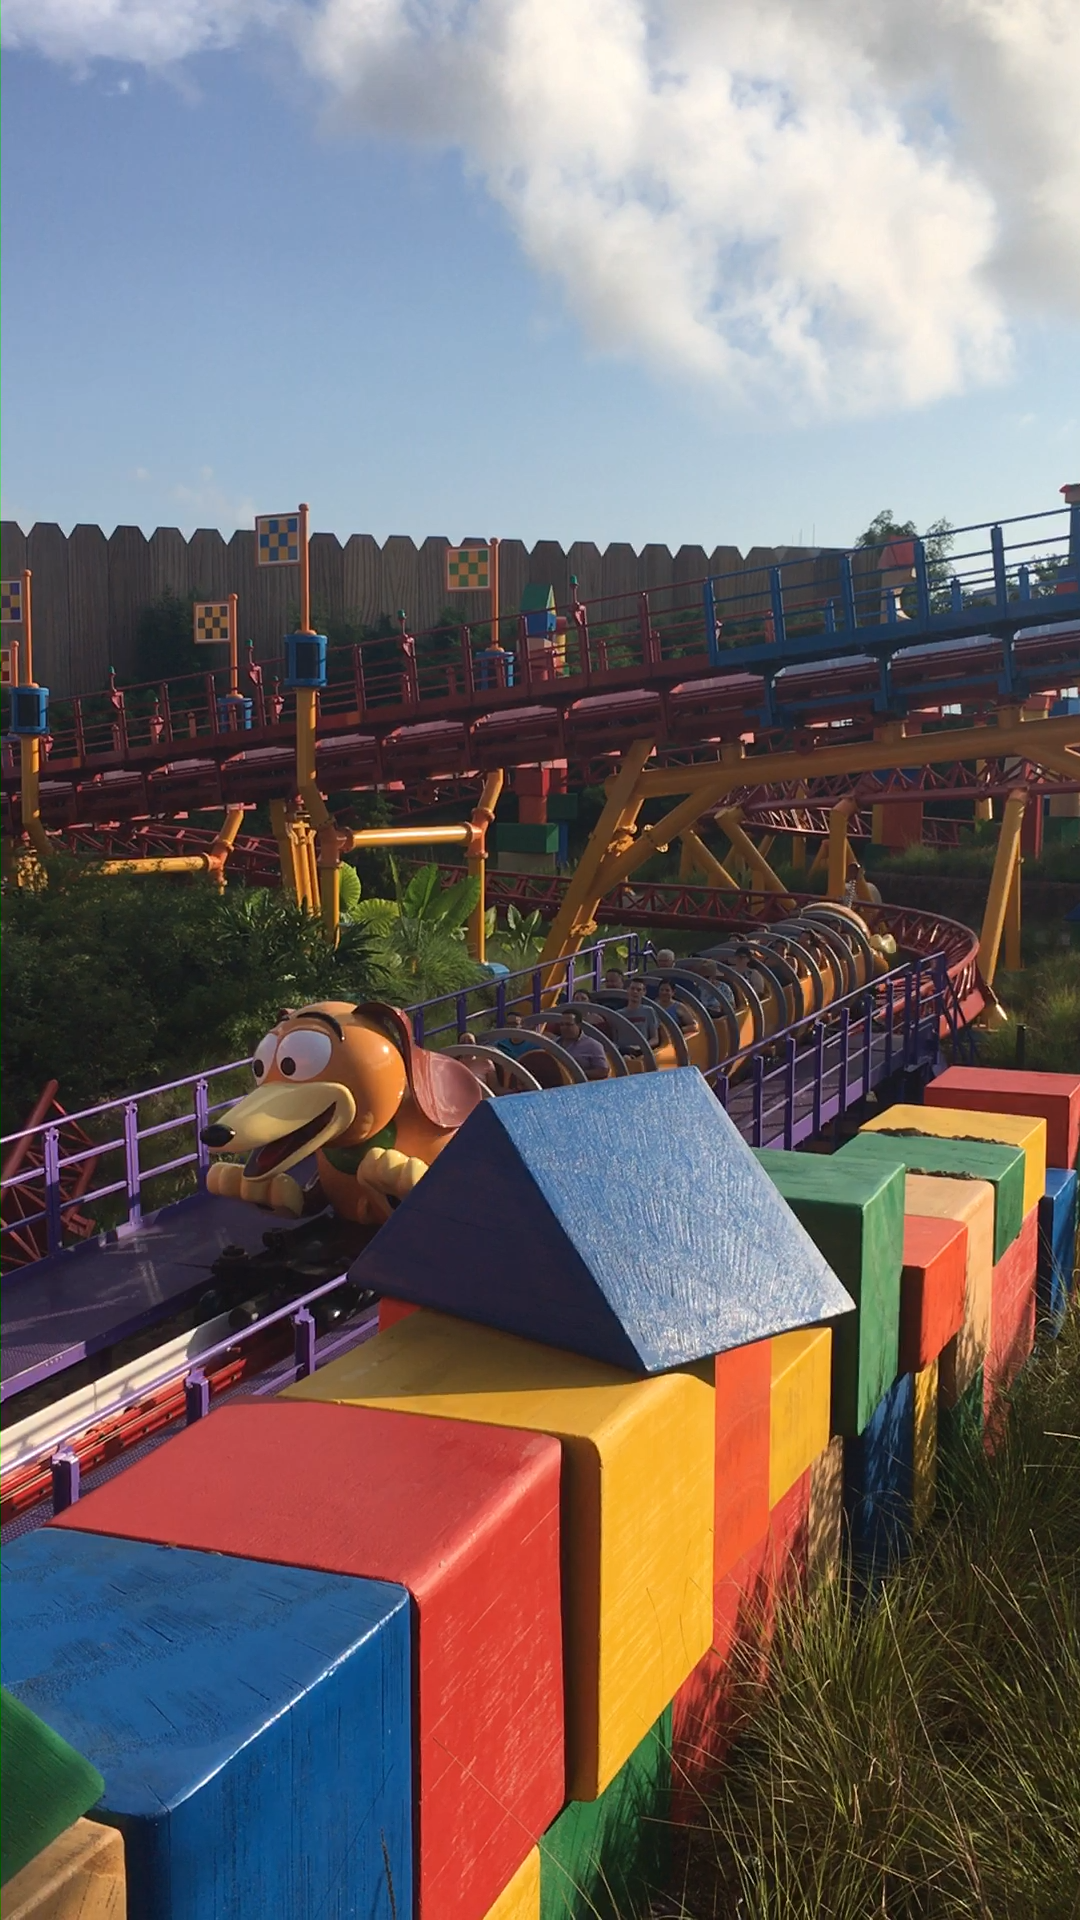 5 BEST Rides at Hollywood Studios that You MUST DO